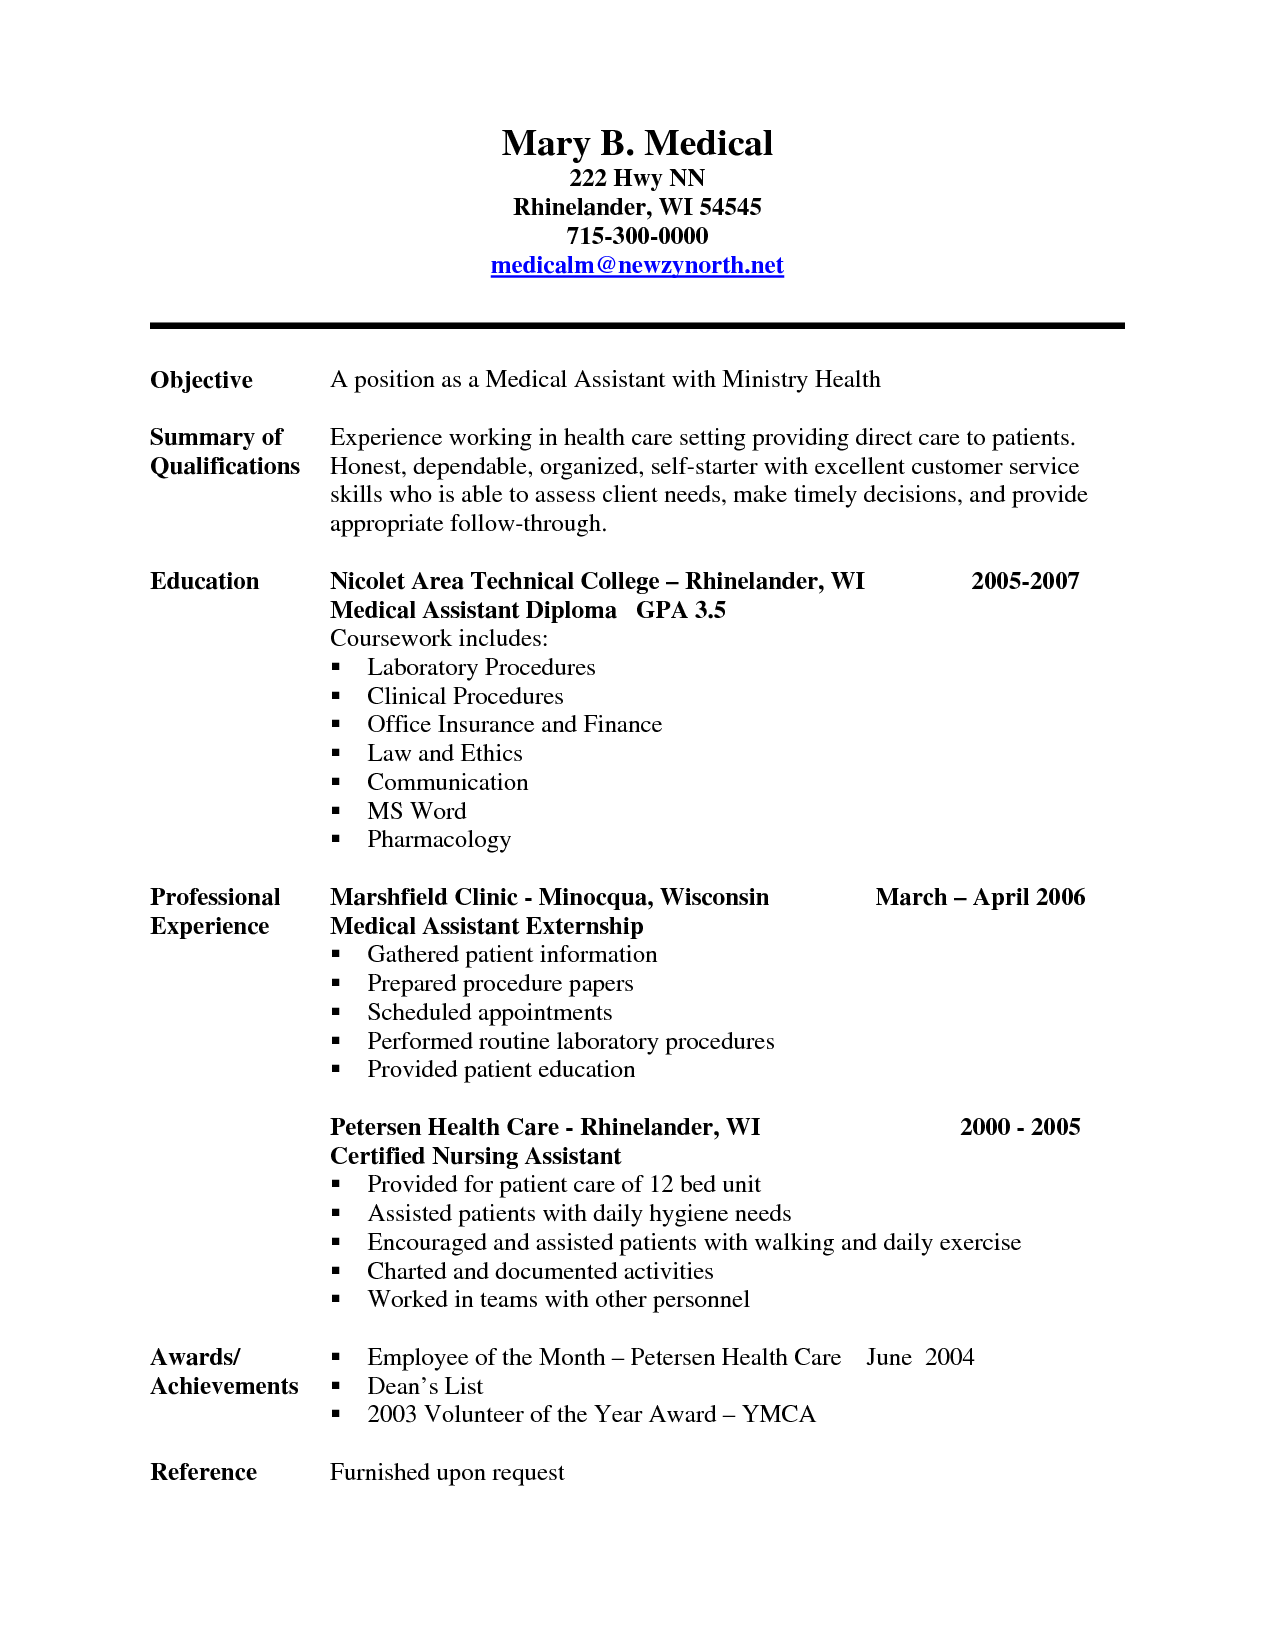 C Level Executive Assistant Resume Sample Experienced Medical Assistant Resume Sample Cakepins